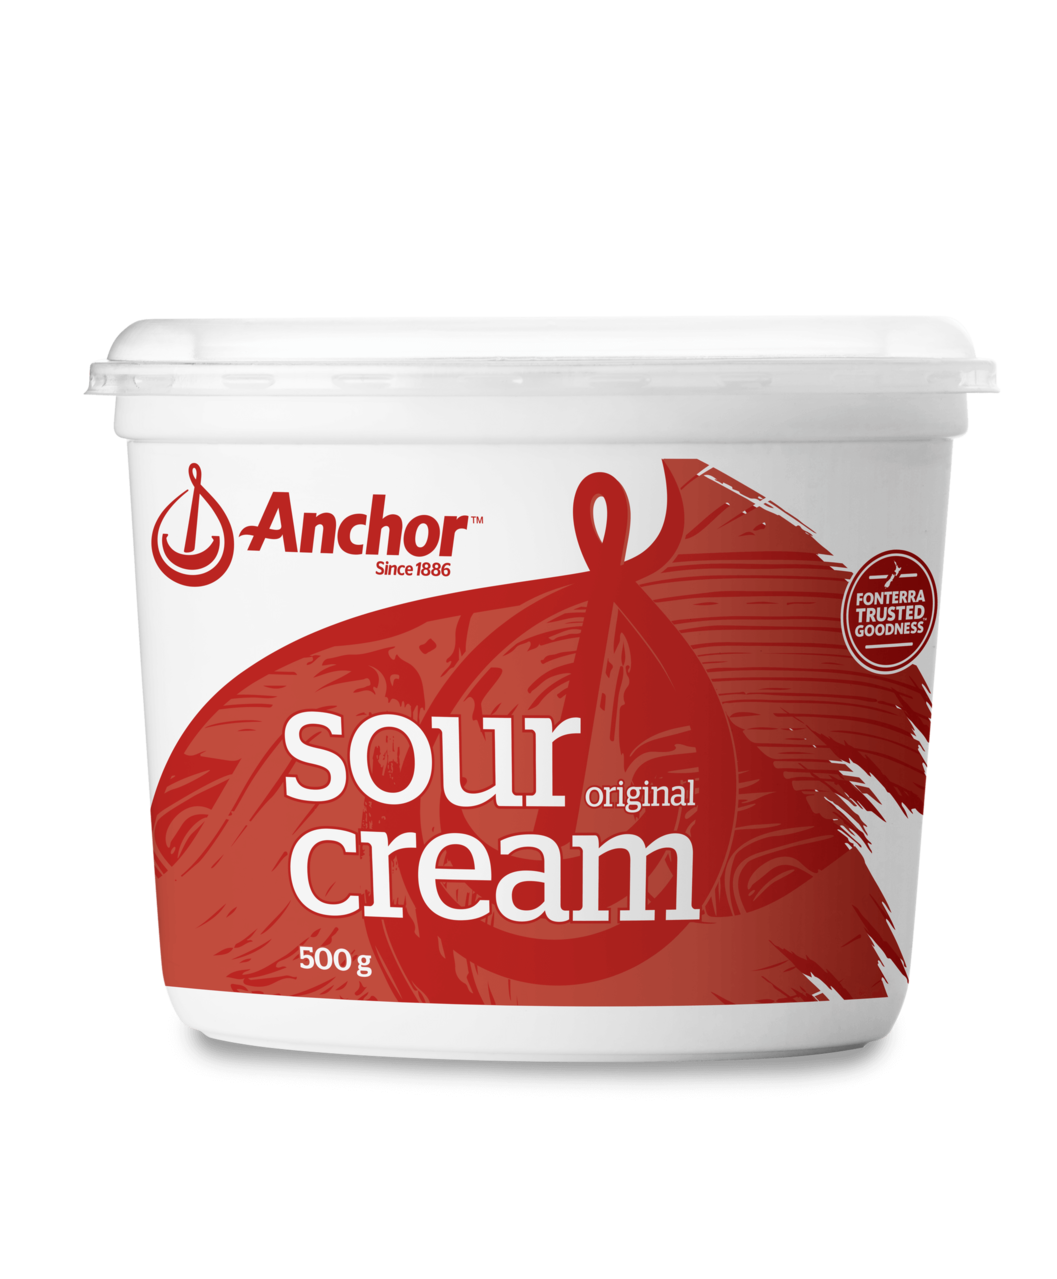 Anchor Sour Cream Original 500g tub